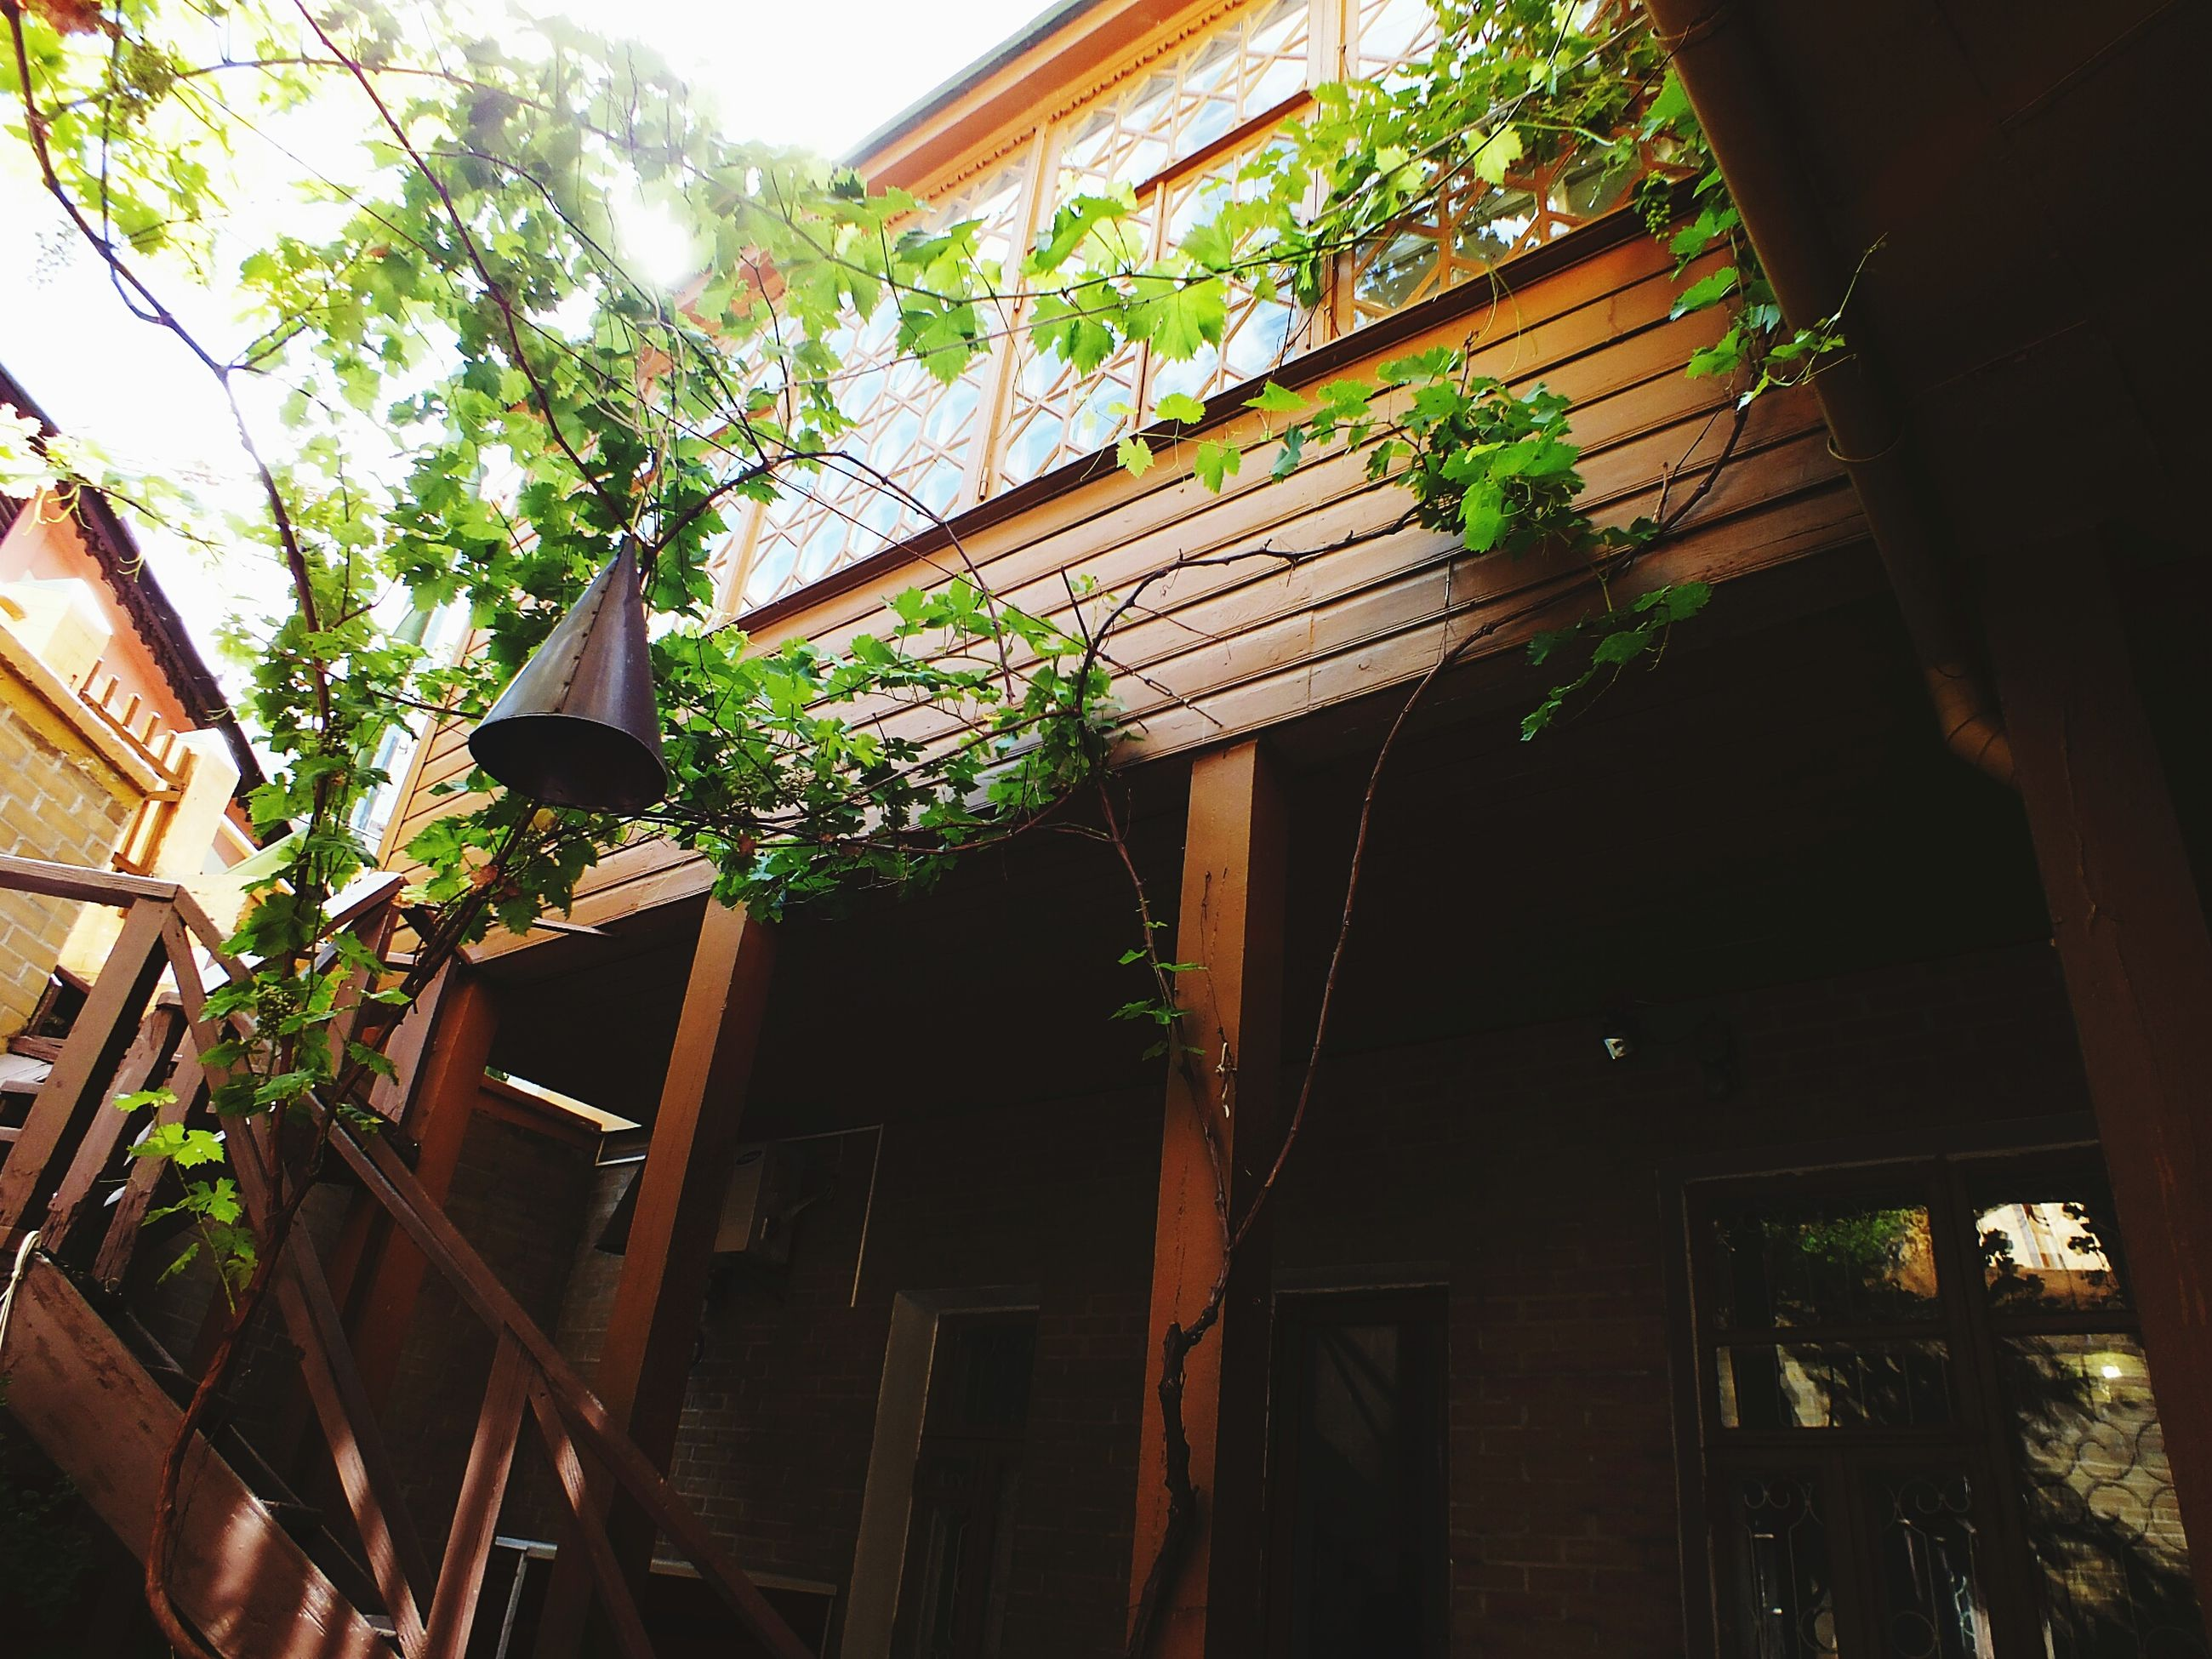 architecture, building exterior, built structure, house, residential structure, residential building, low angle view, tree, growth, plant, balcony, building, day, no people, outdoors, sky, nature, exterior, growing